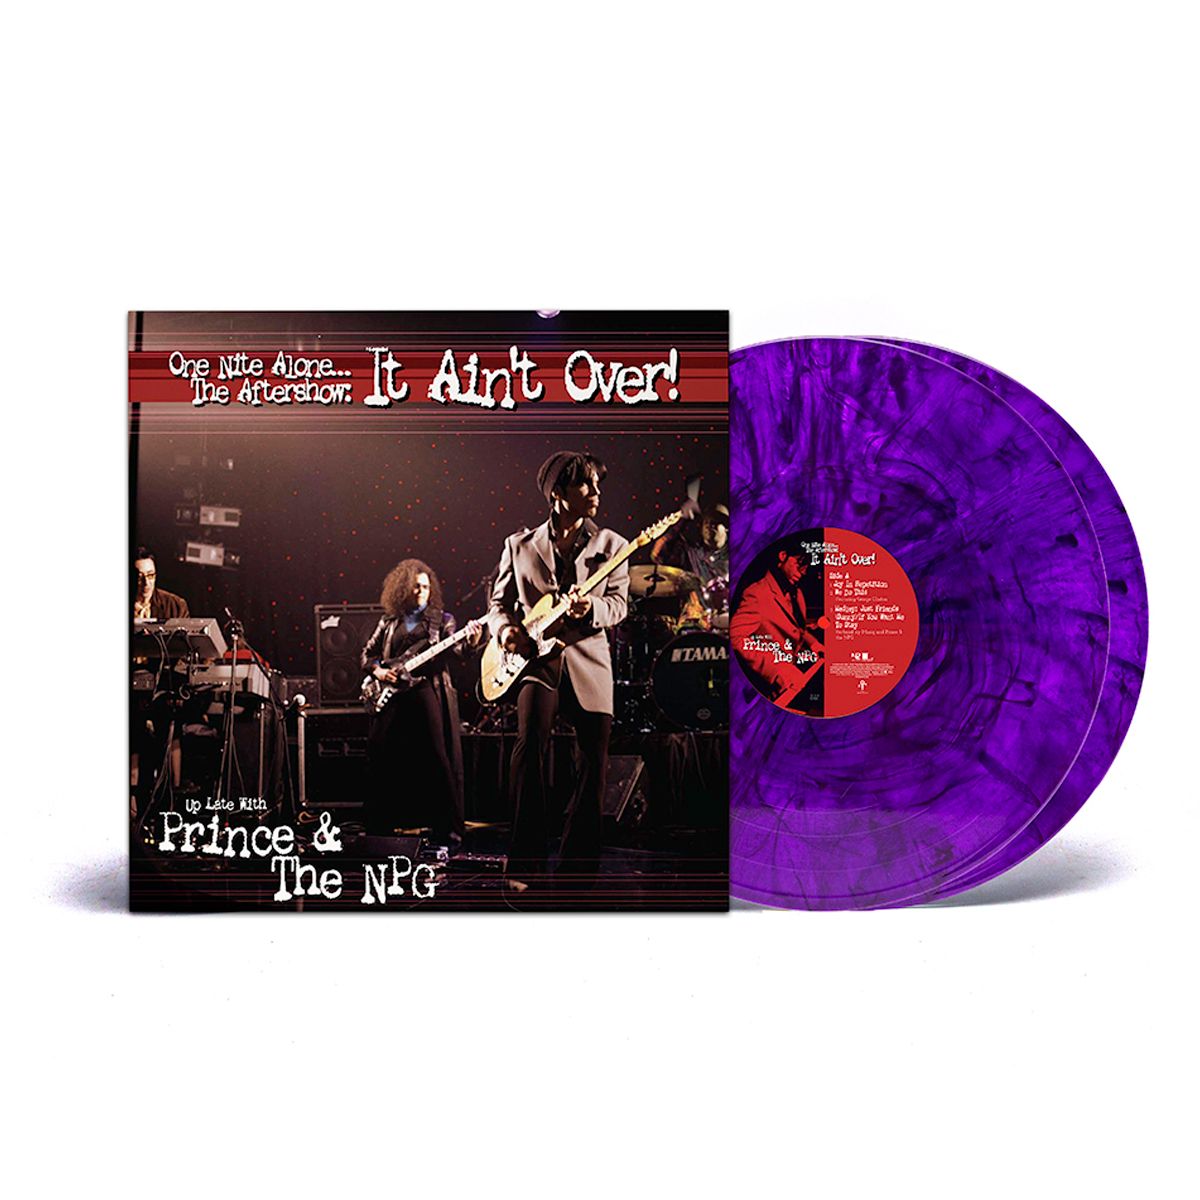 One Nite Alone... The Aftershow: It Aint Over! (2LP / Purple / 150G)